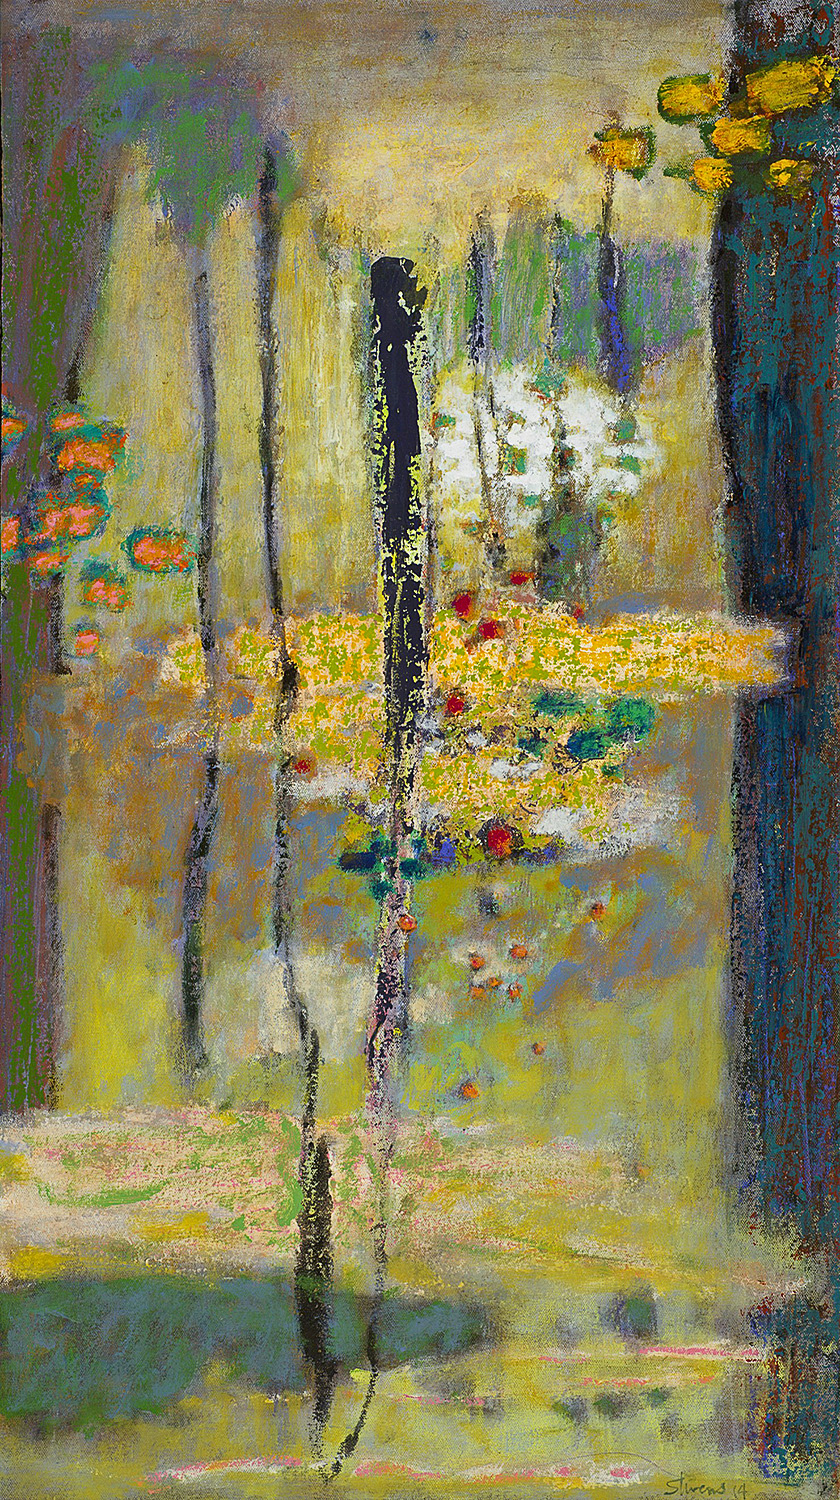 The Path Between | oil on canvas | 32 x 16"